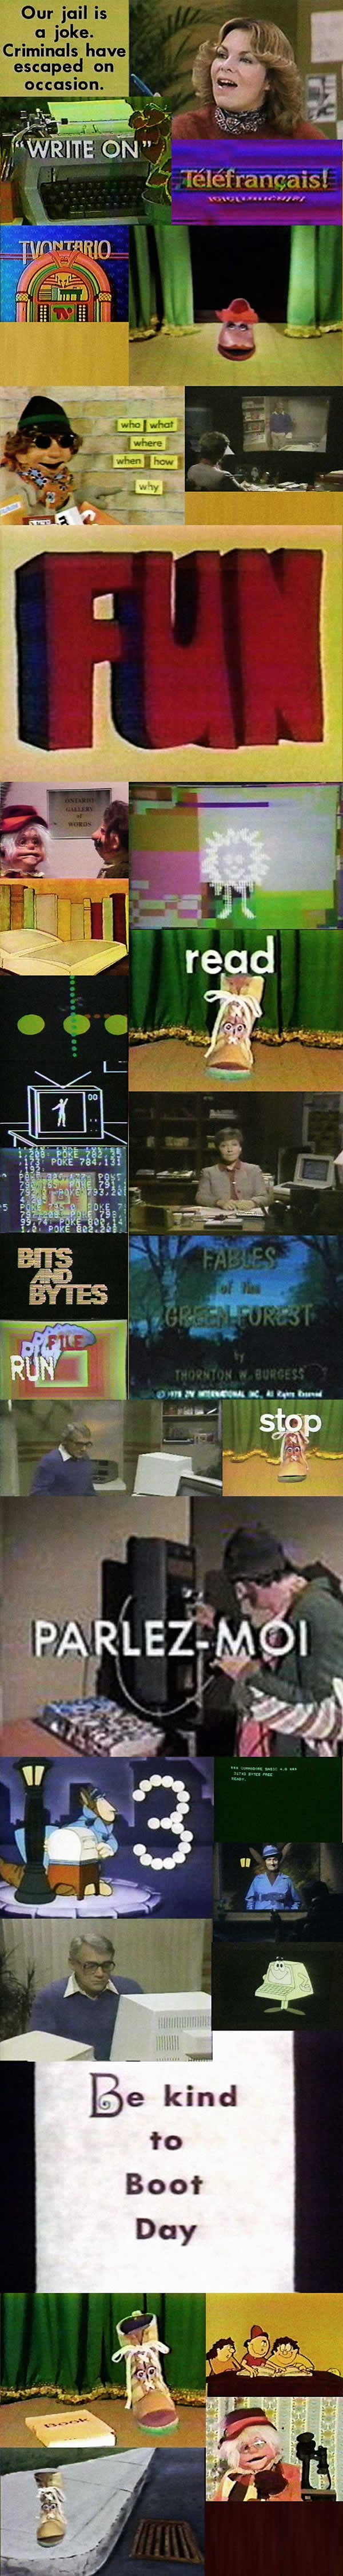 Montage of stills from TVOntario's educational shows from the late 1970s and early 1980s.